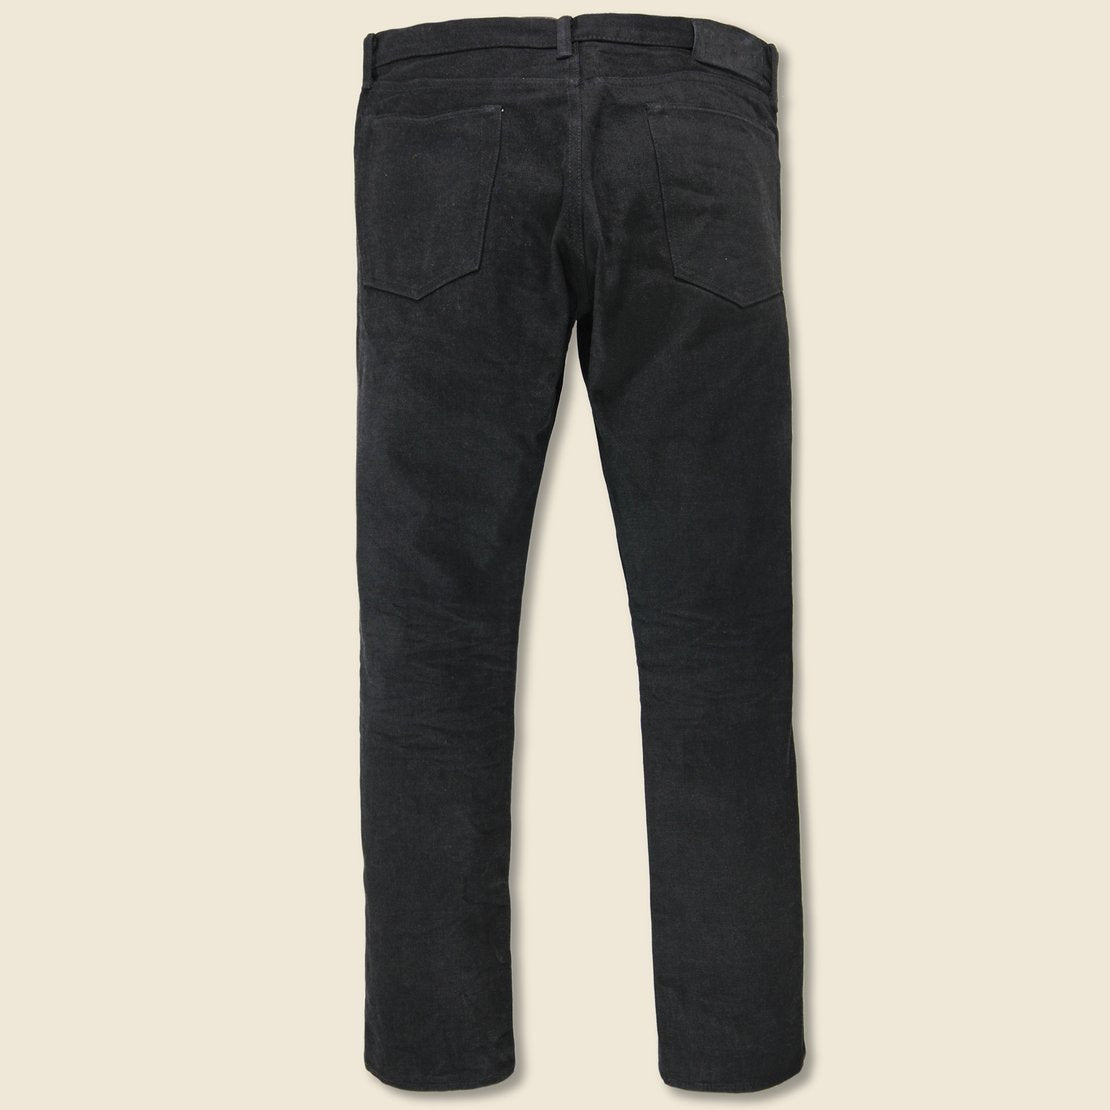 Slim Fit Jean - Black on Black